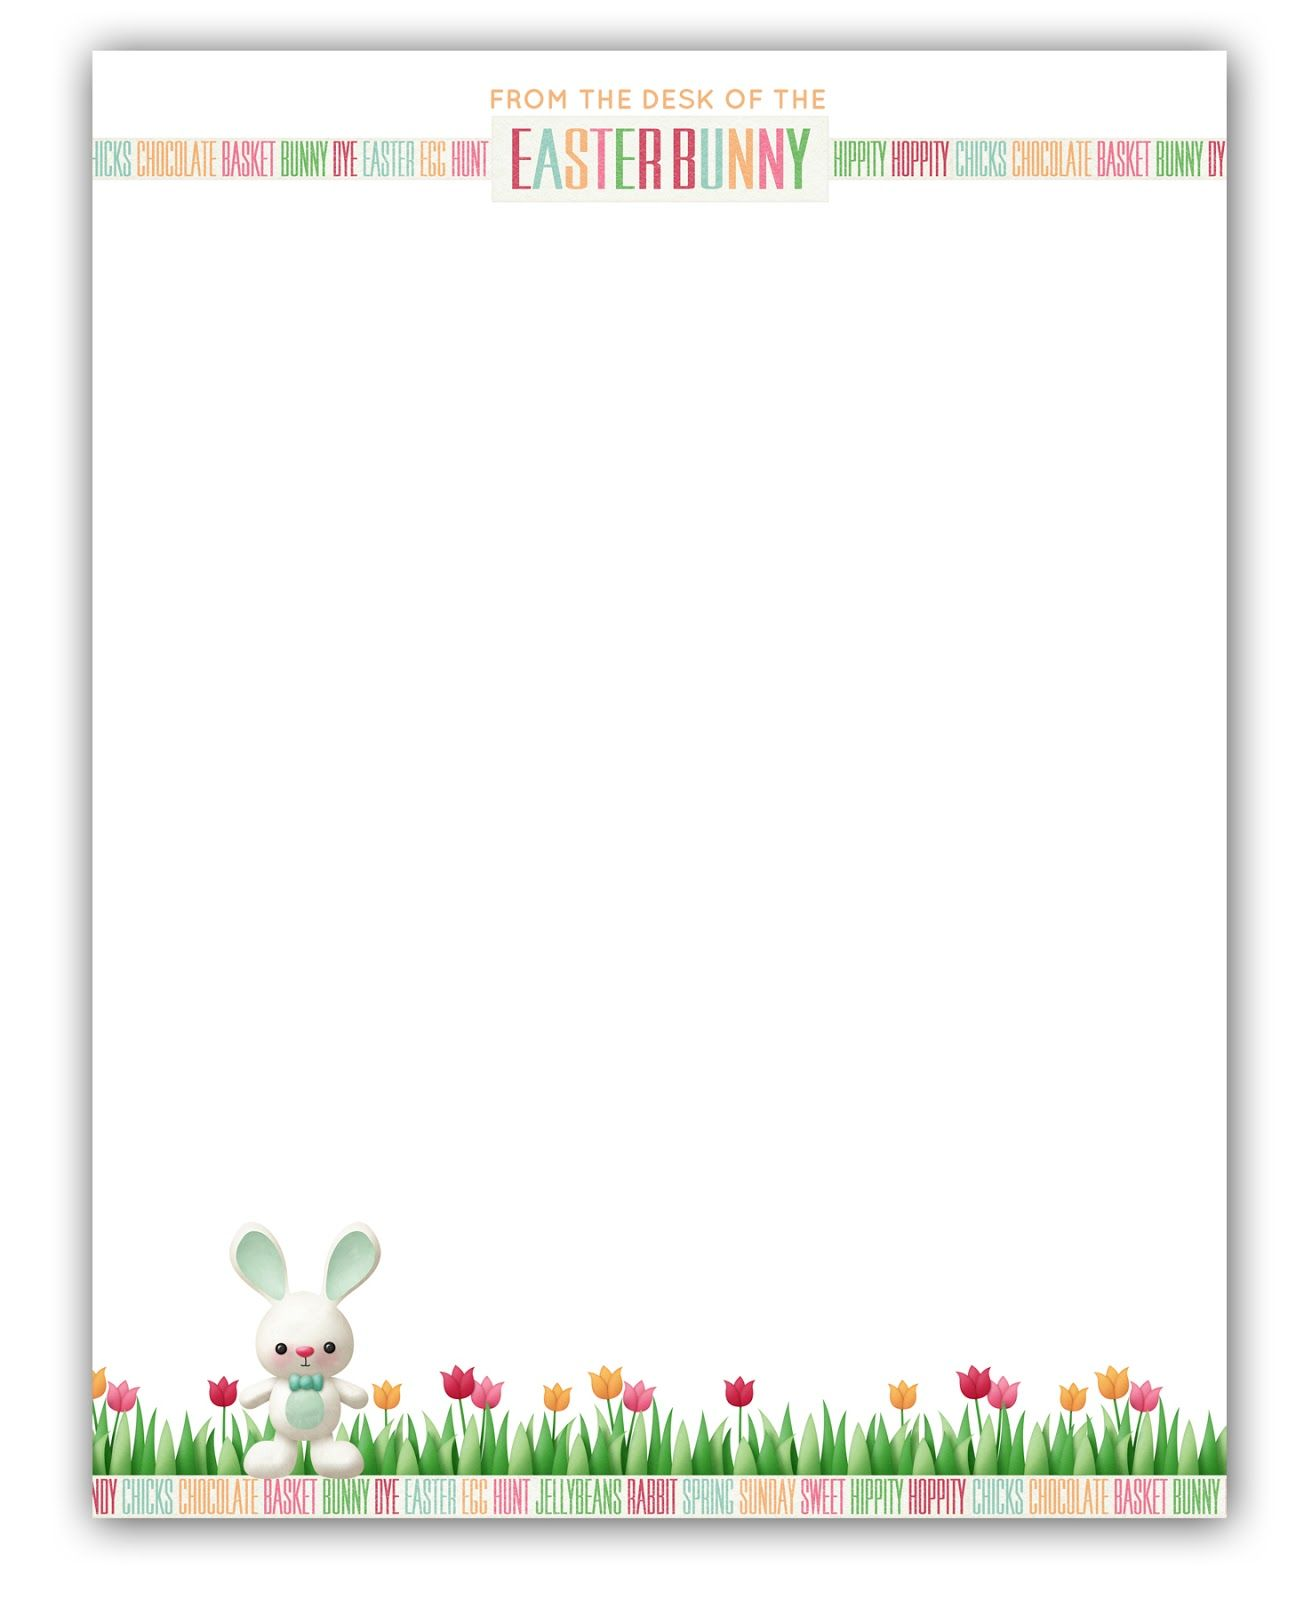 graphic relating to Easter Stationery Printable known as Easter Bunny Stationary Cost-free Printable Printable